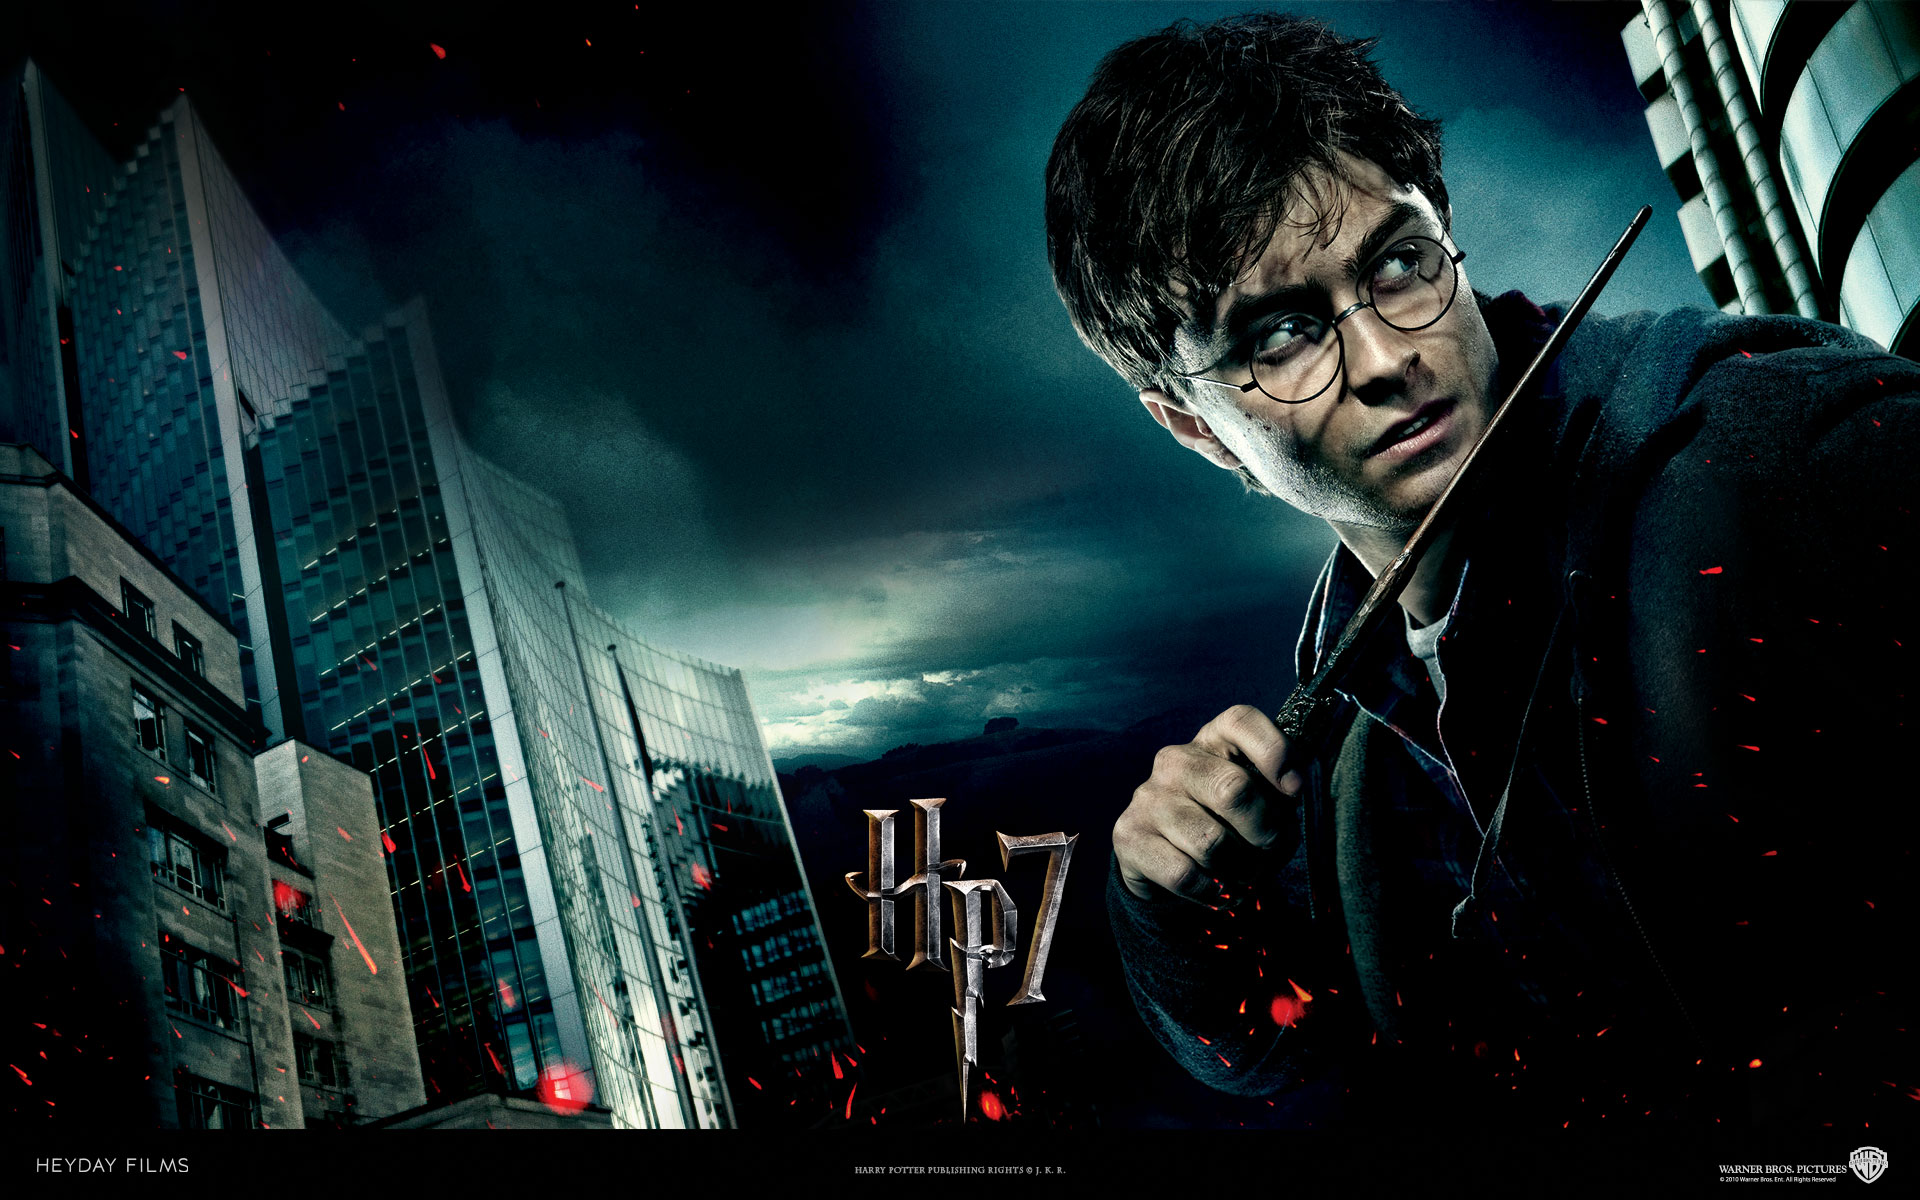 Harry Potter and the Deathly Hallows 652.17 Kb